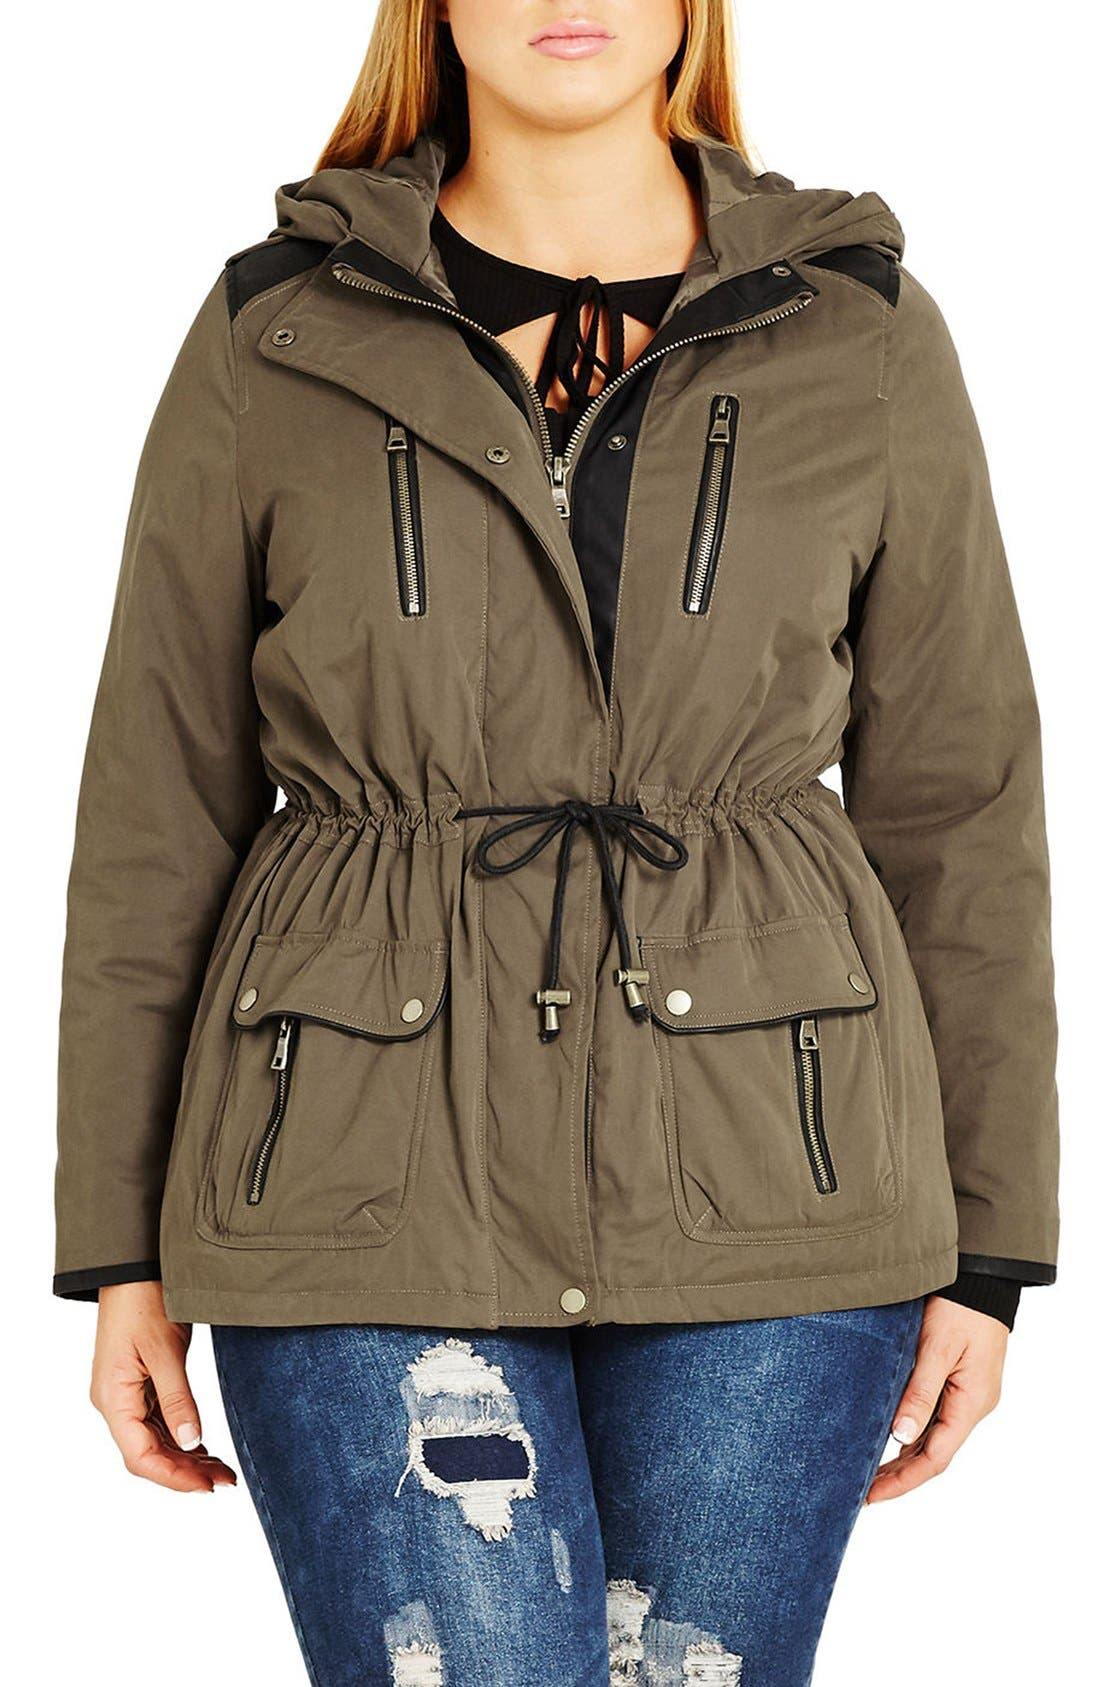 CITY CHIC In Line Drawstring Waist Military Parka